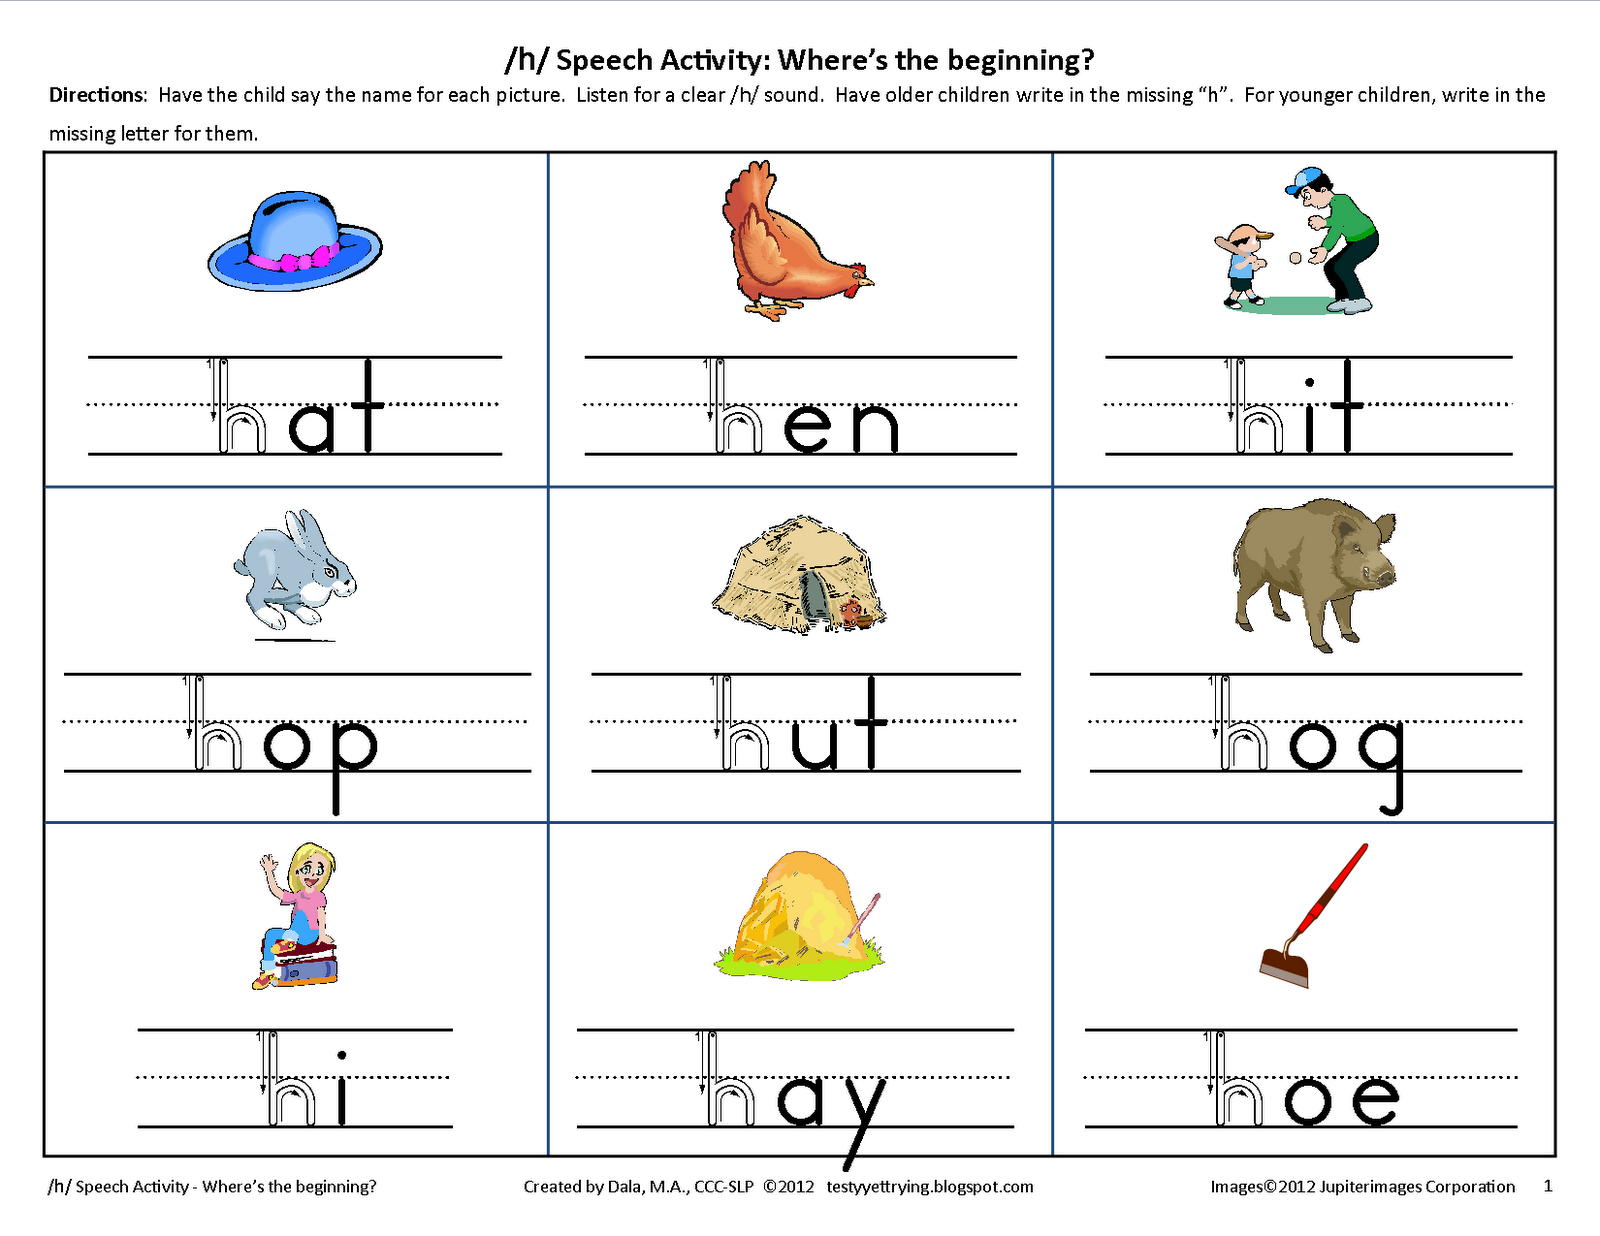 Weirdmailus  Inspiring Testy Yet Trying Initial H Speech Worksheet With Licious Make Classroom Teachers Happy Reinforce Phonics And Handwriting And Practice Speech All At The Same Time With Adorable Missing Words Worksheets Also Picture Math Worksheets Printable In Addition Sight Words For First Grade Worksheets And Past Tense Worksheet For Grade  As Well As English Handwriting Worksheets Printable Additionally Inferencing Worksheets Grade  From Testyyettryingblogspotcom With Weirdmailus  Licious Testy Yet Trying Initial H Speech Worksheet With Adorable Make Classroom Teachers Happy Reinforce Phonics And Handwriting And Practice Speech All At The Same Time And Inspiring Missing Words Worksheets Also Picture Math Worksheets Printable In Addition Sight Words For First Grade Worksheets From Testyyettryingblogspotcom